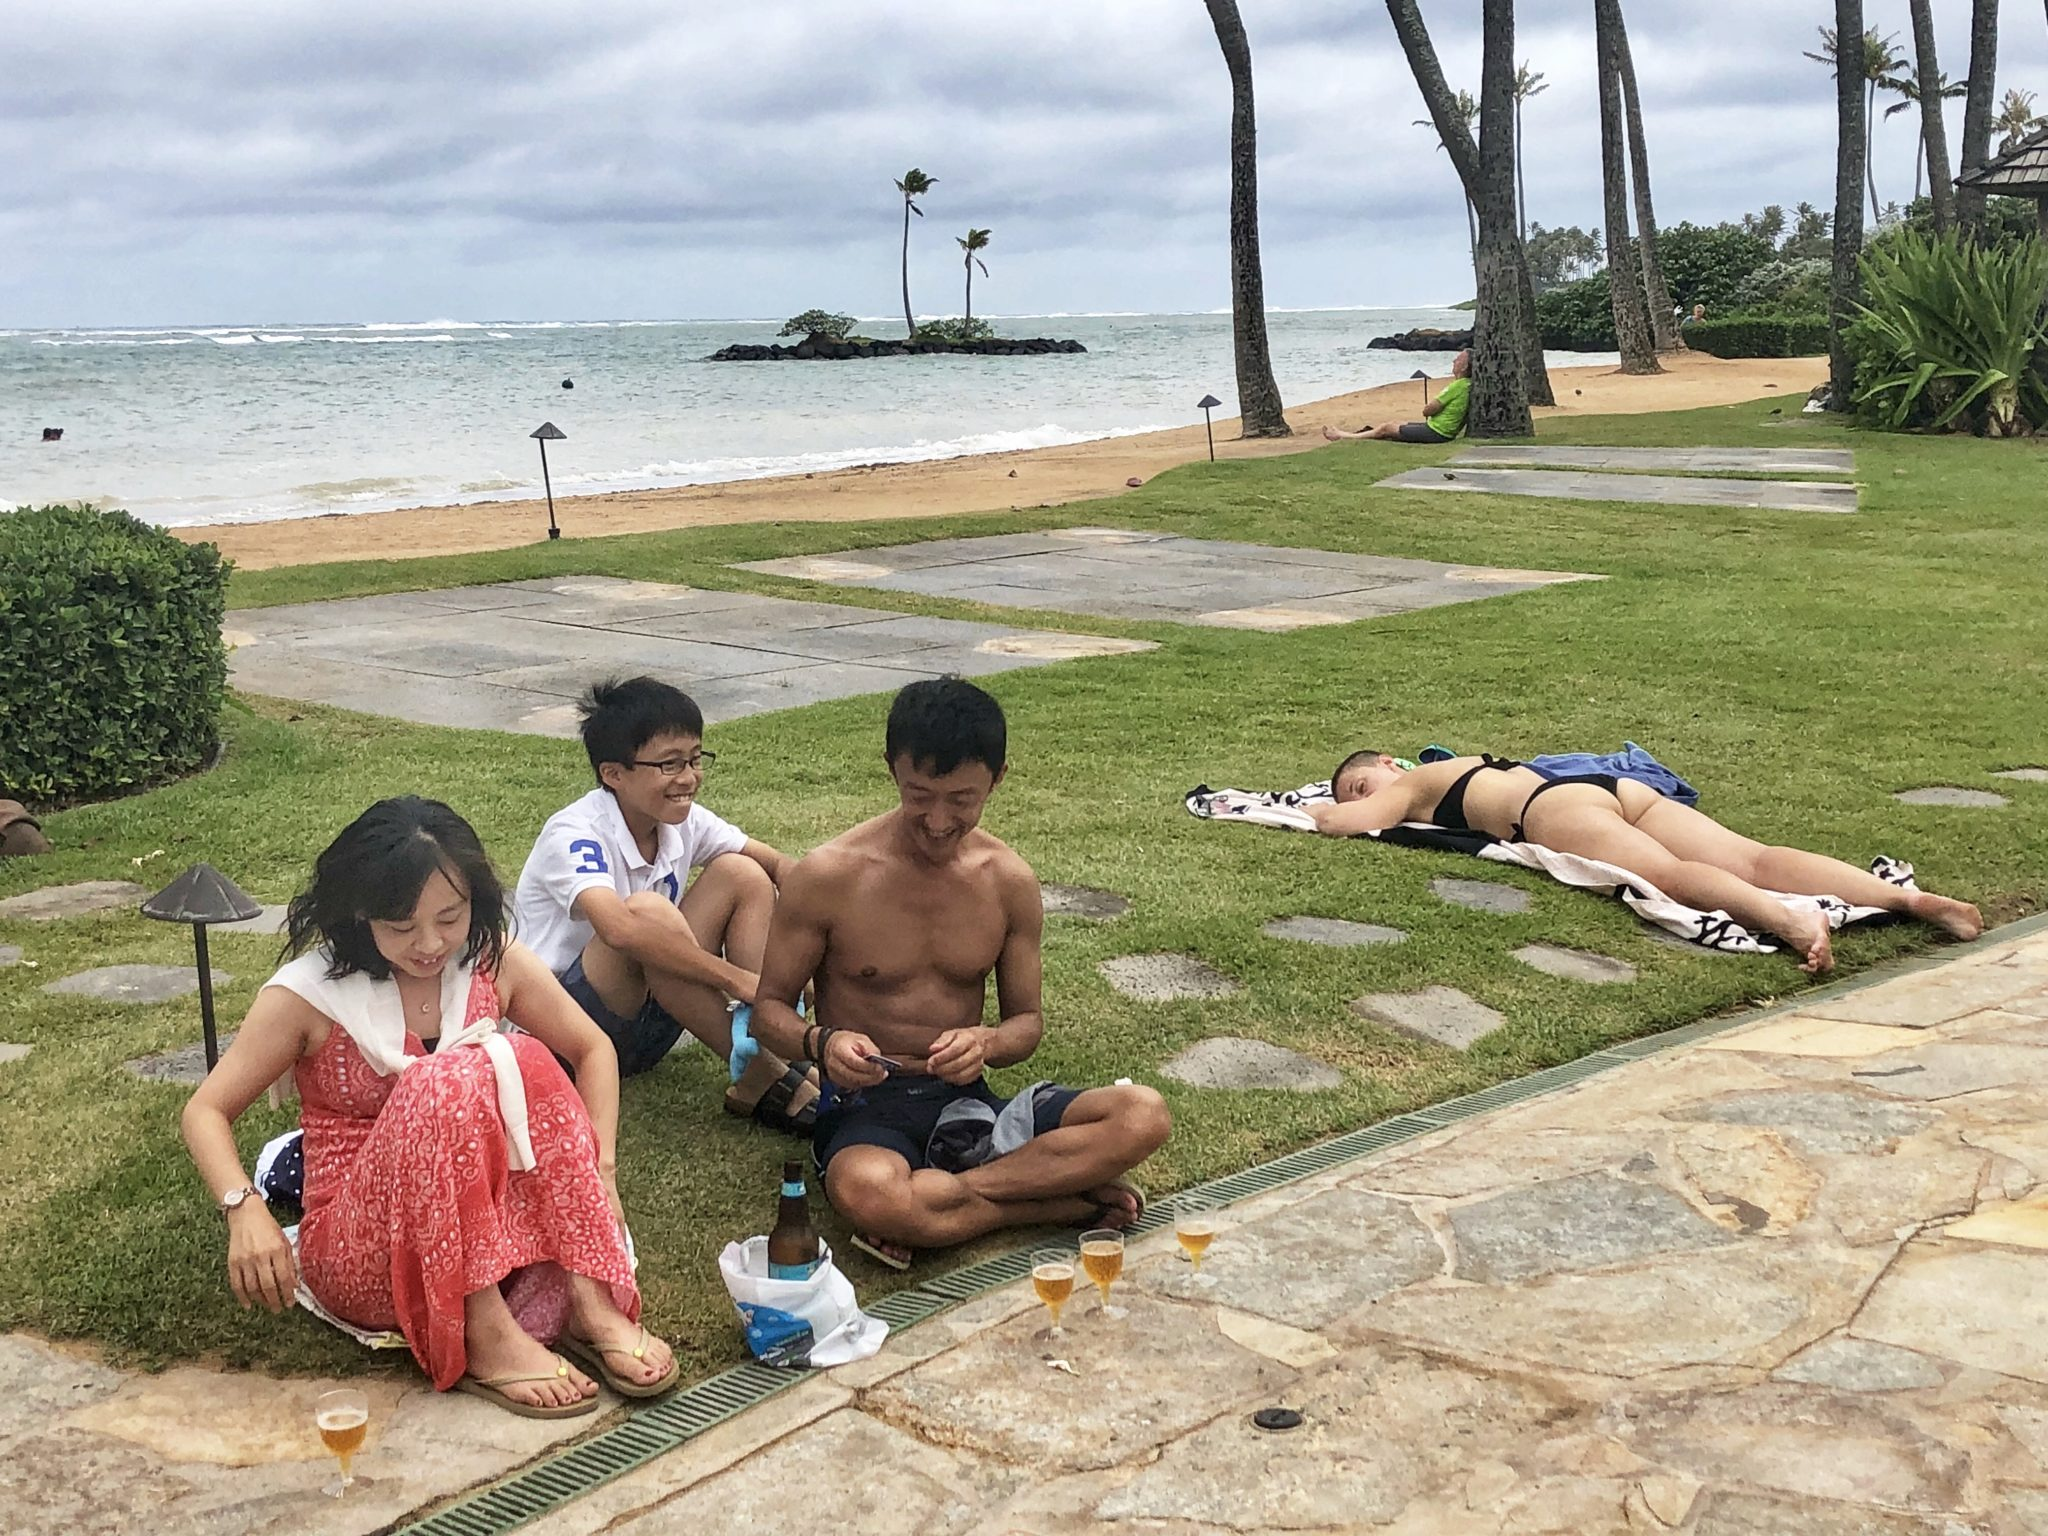 <p>These guests of the Kahala Hotel and Resort didn't seem fazed by the impending storm. Photograph by Brittany Lyte/Civil Beat</p>